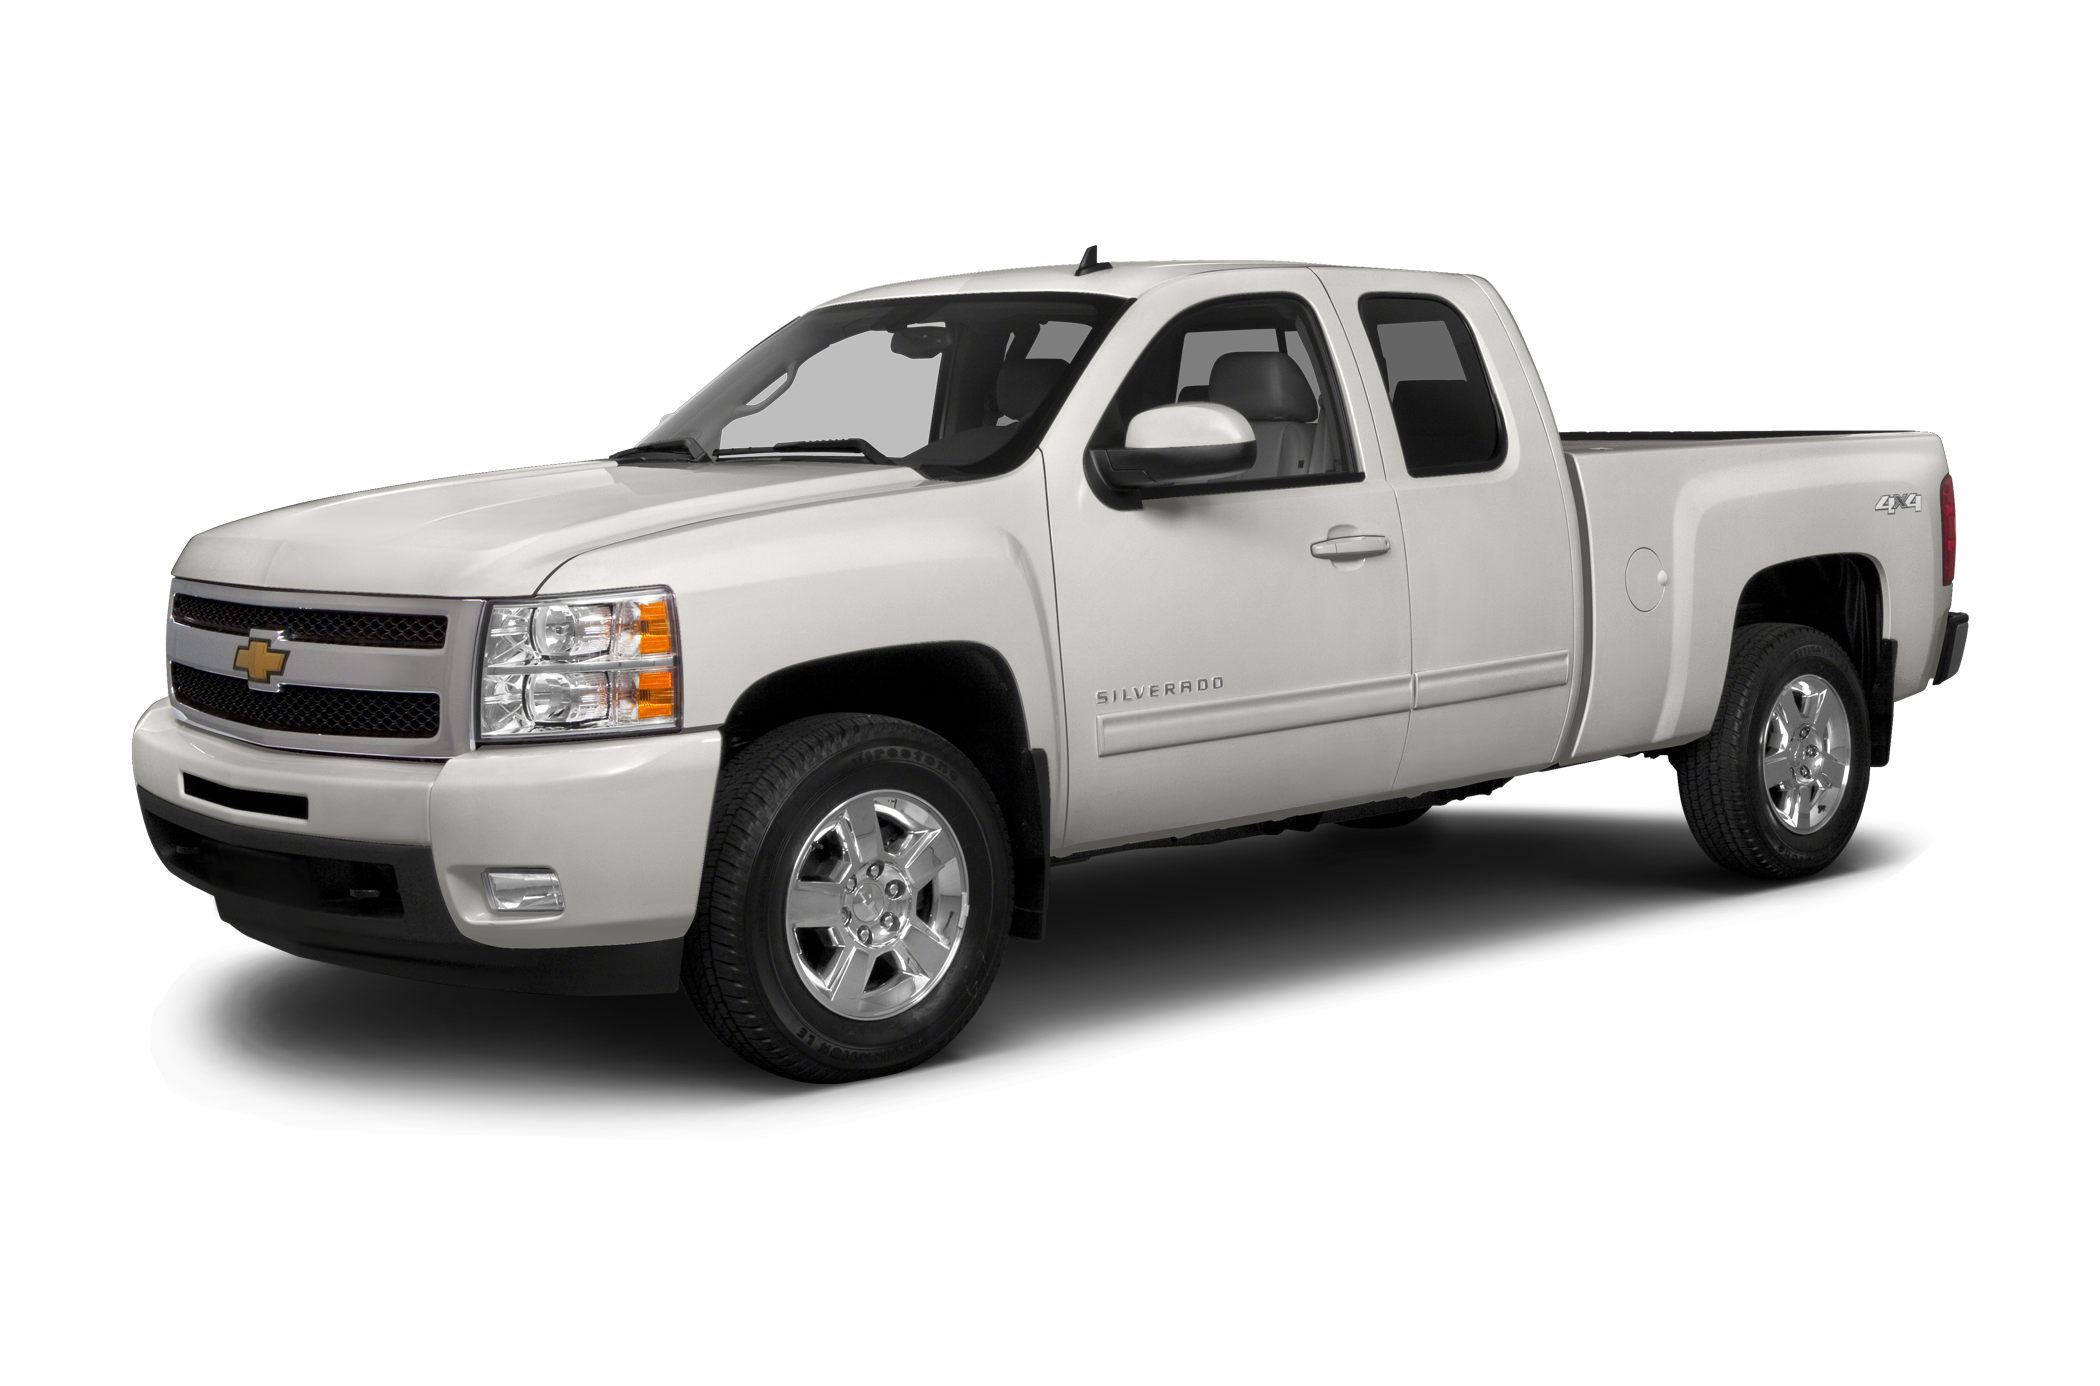 2013 Chevrolet Silverado 1500 Lt 4x4 Extended Cab 8 Ft Box 157 5 In Wb Specs And Prices